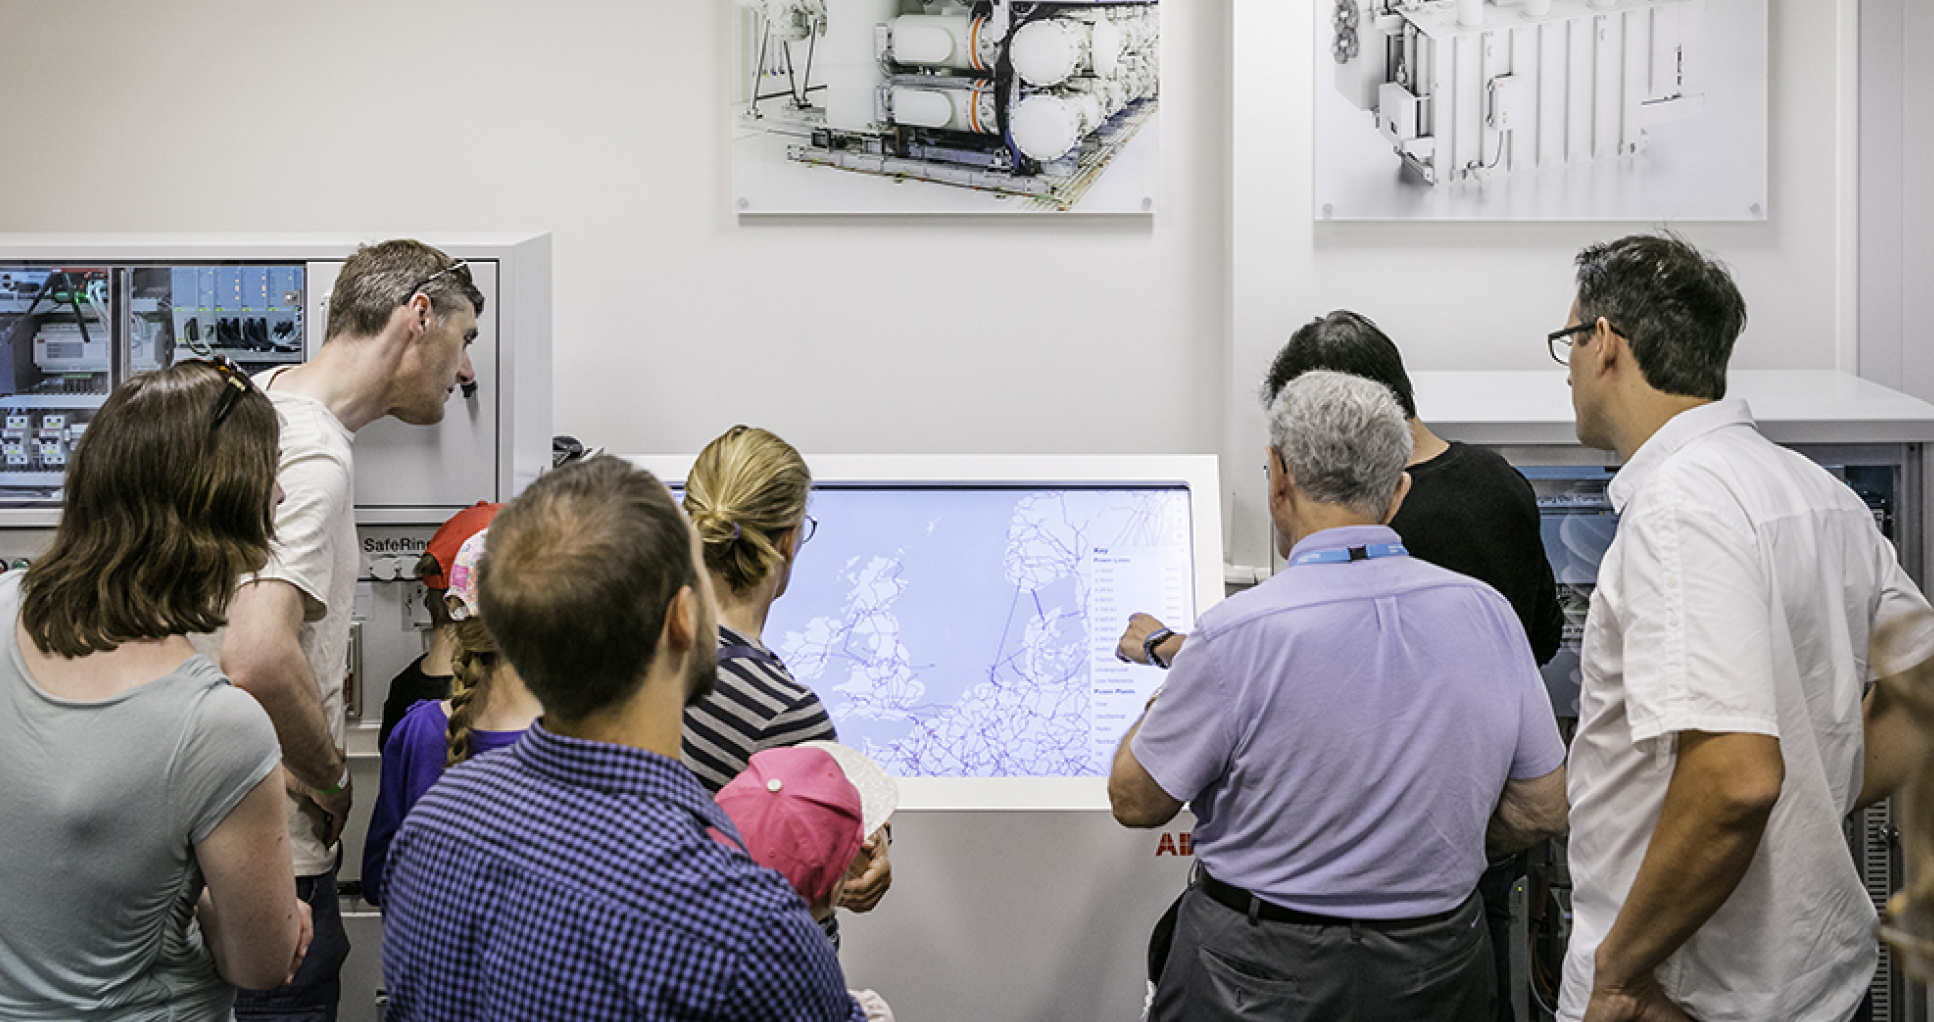 Guest being shown around the ABB-Imperial Digital Energy Demonstrator facility